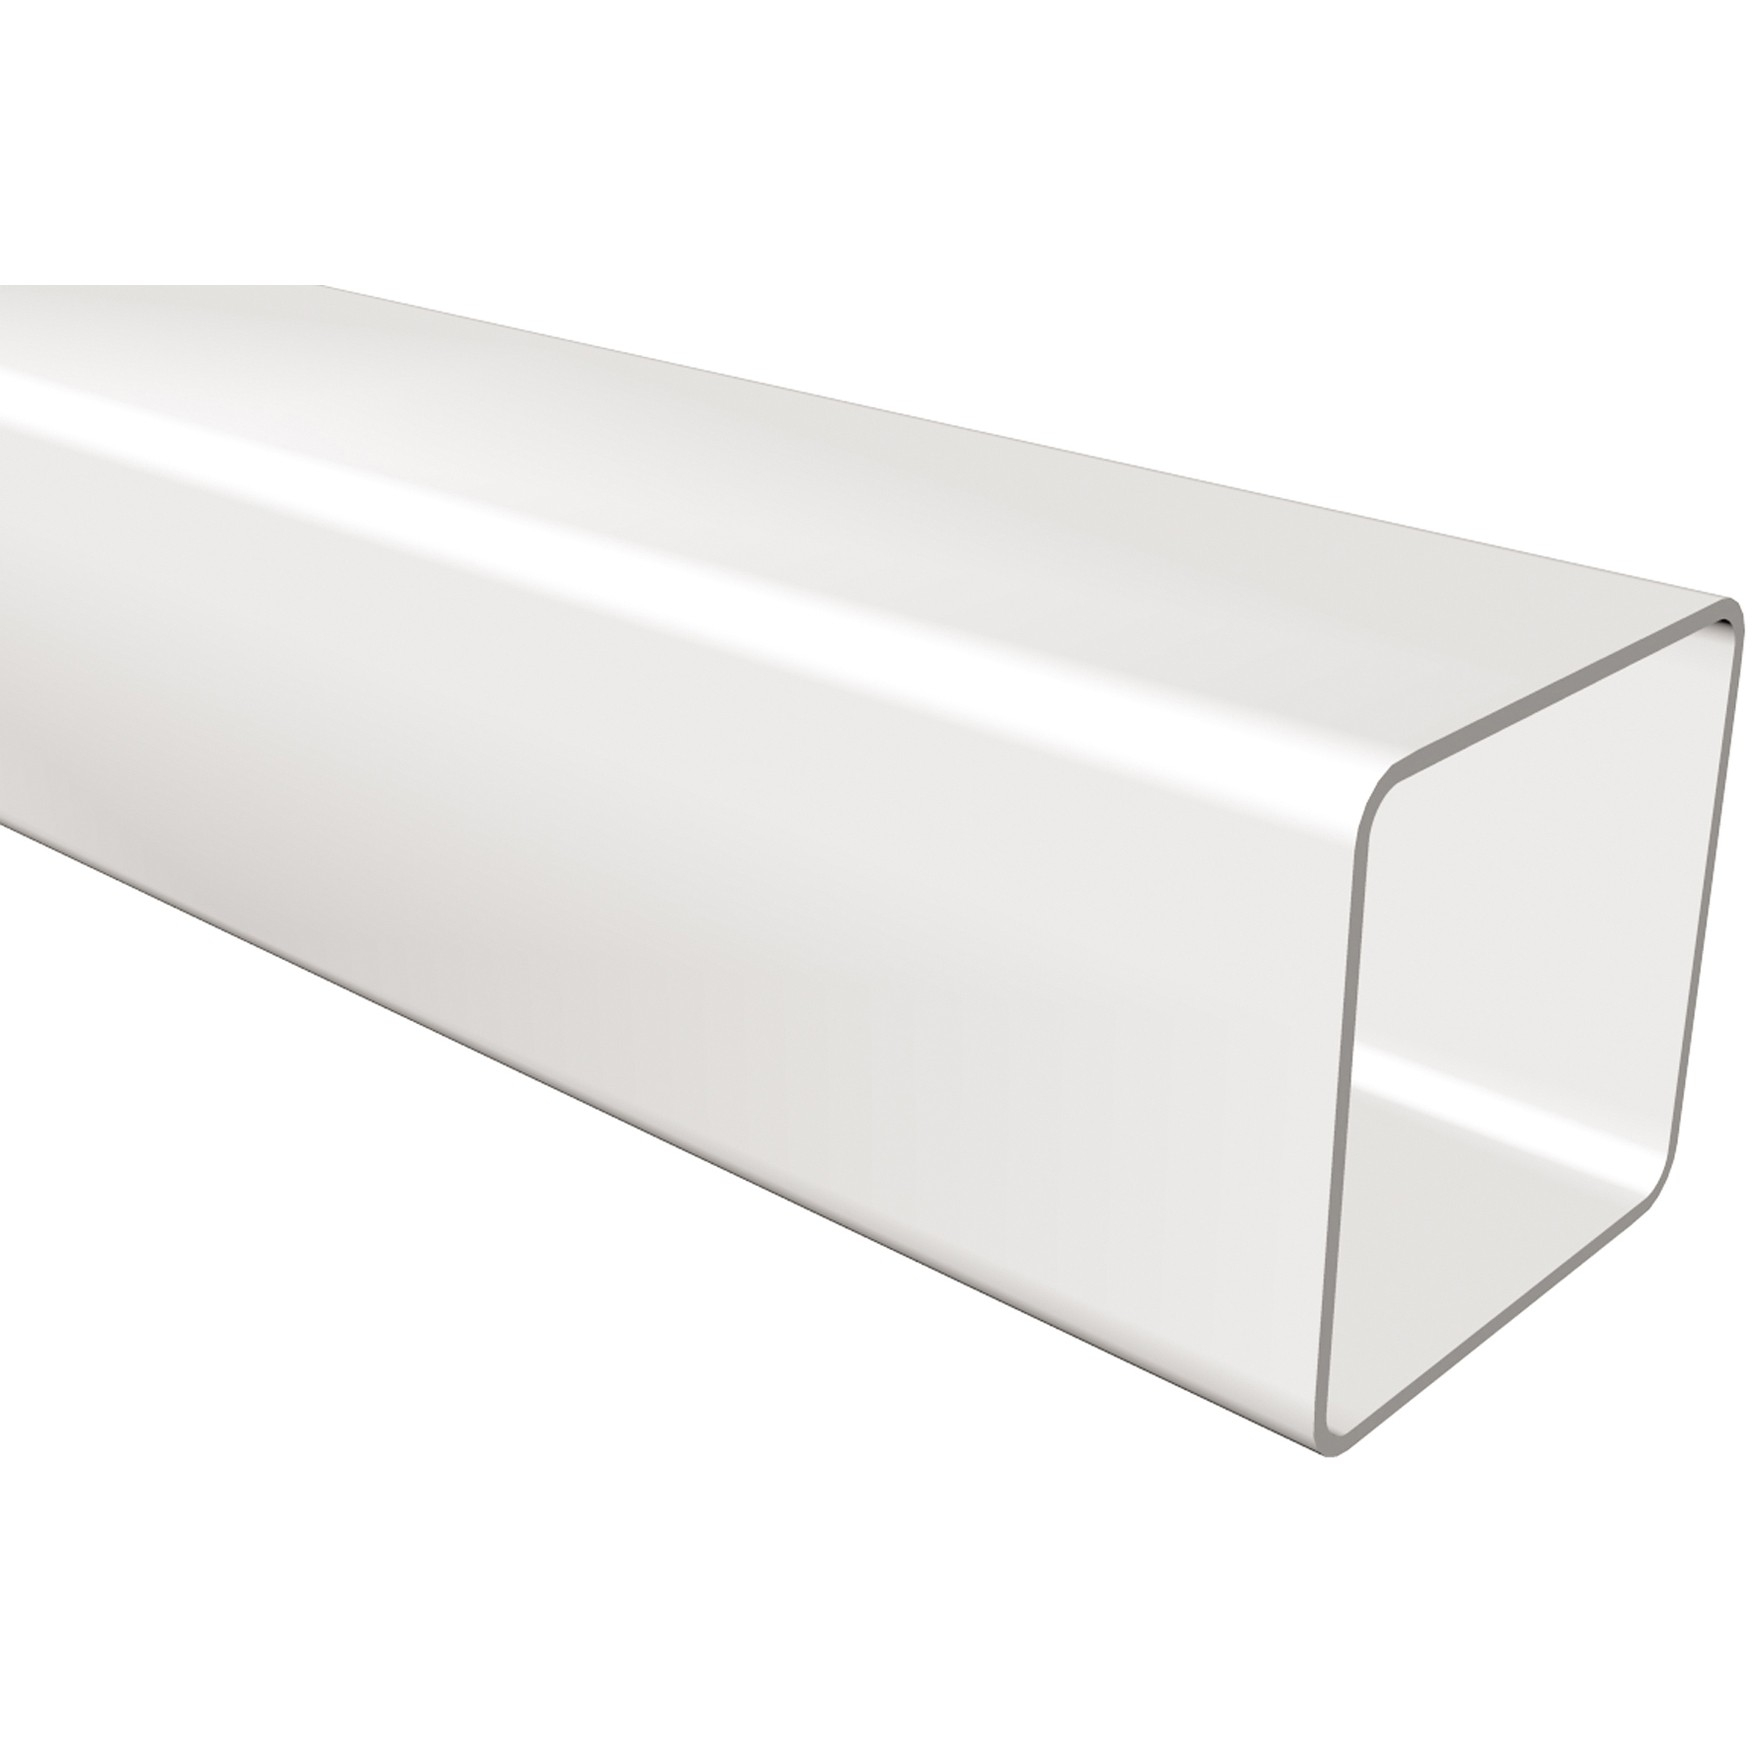 Freeflow 65mm Square Down Pipe - White, 2.75 metre